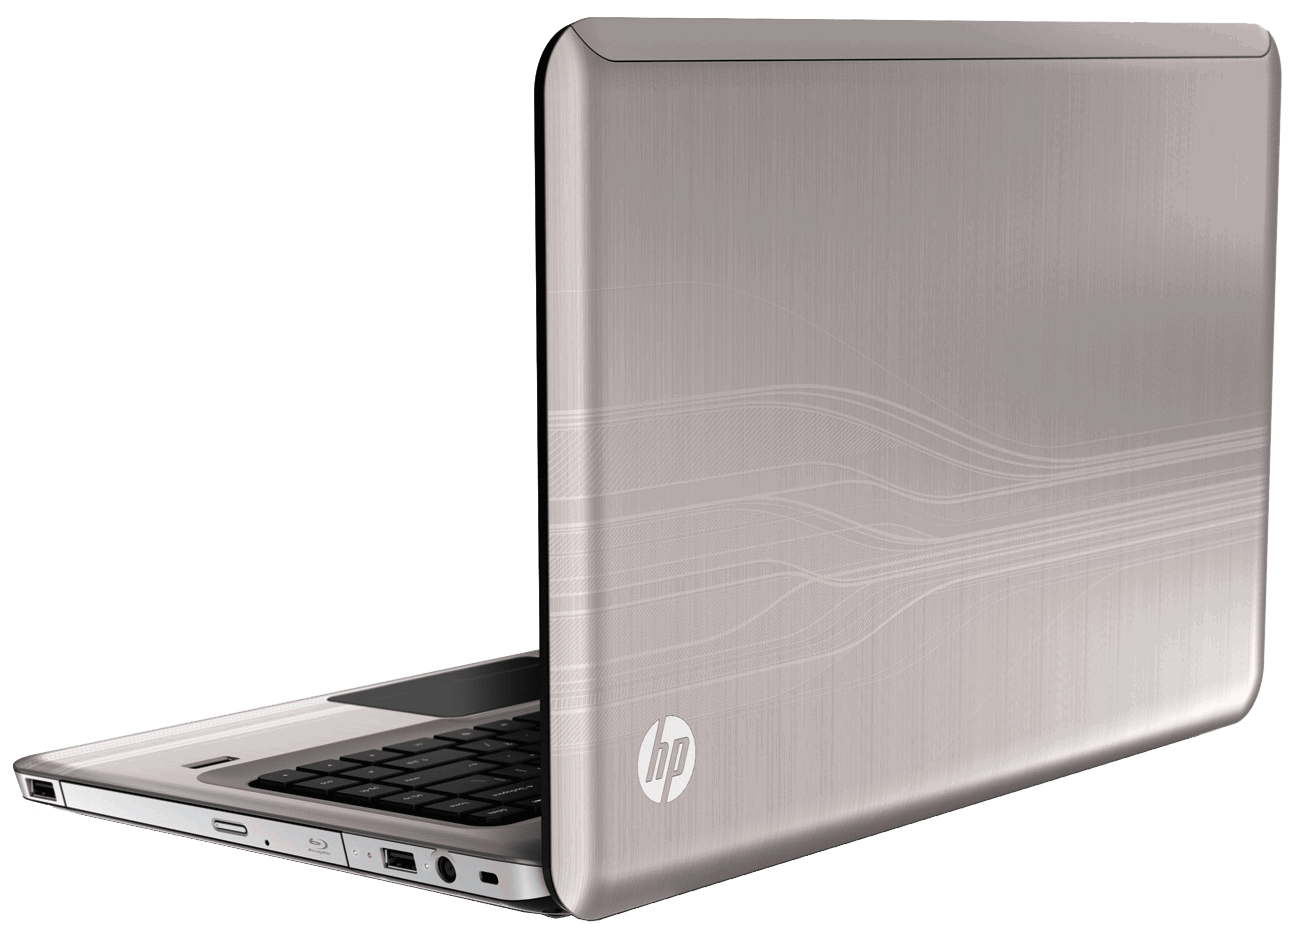 Laptops PNG images, notebook PNG image, laptop.